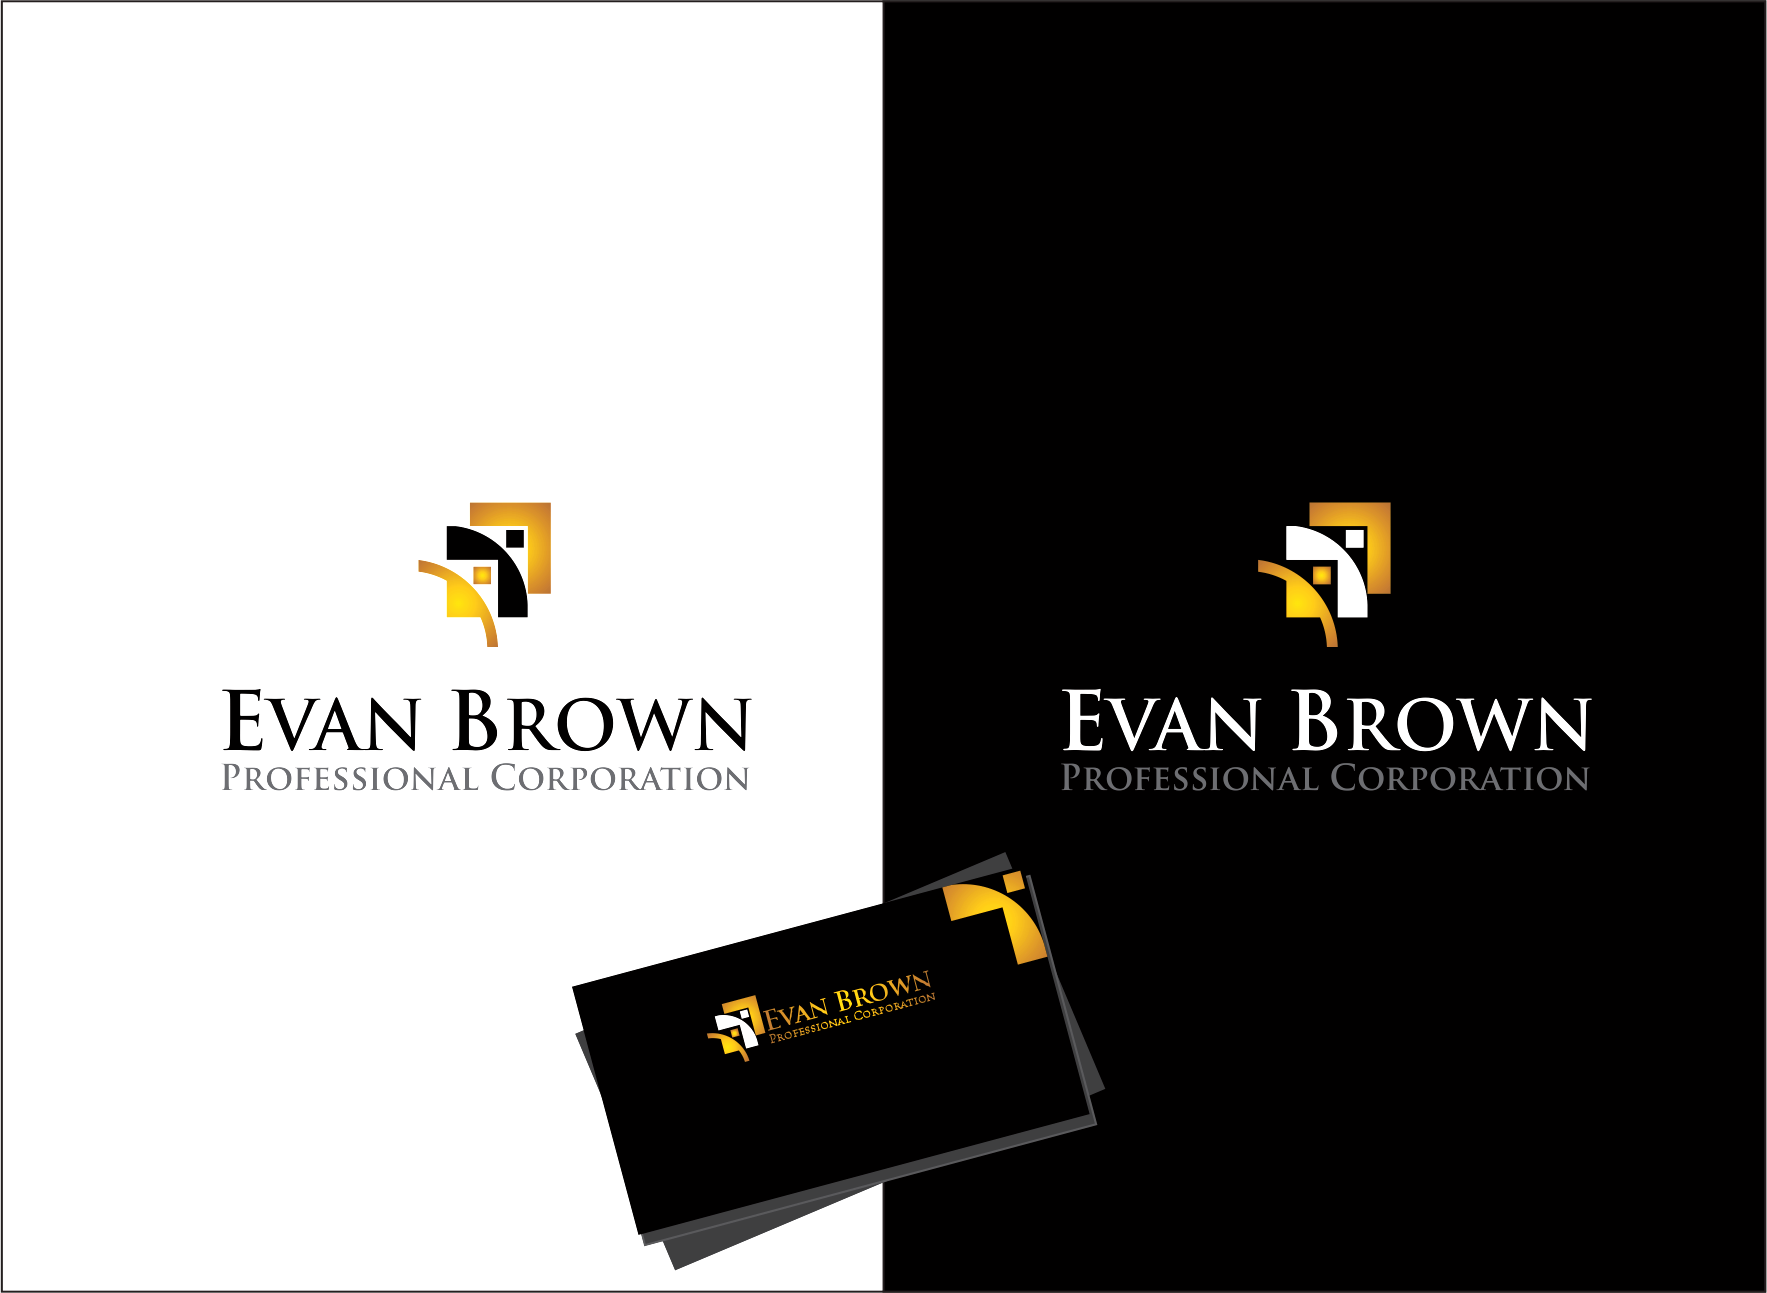 Logo Design by Armada Jamaluddin - Entry No. 164 in the Logo Design Contest Inspiring Logo Design for Evan Brown Professional Corporation.